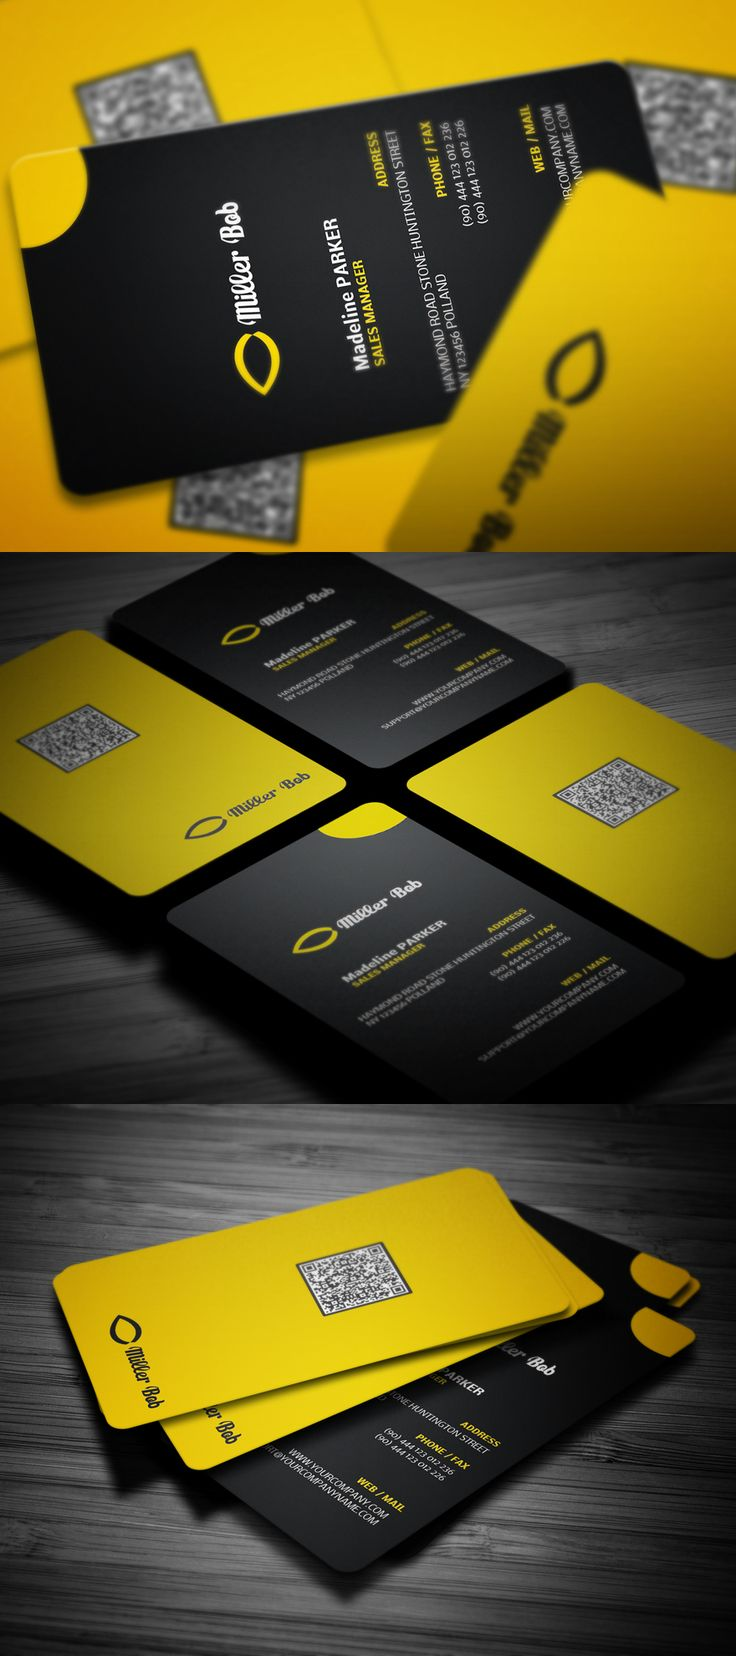 84 Best Business Cards Images On Pinterest Business Cards